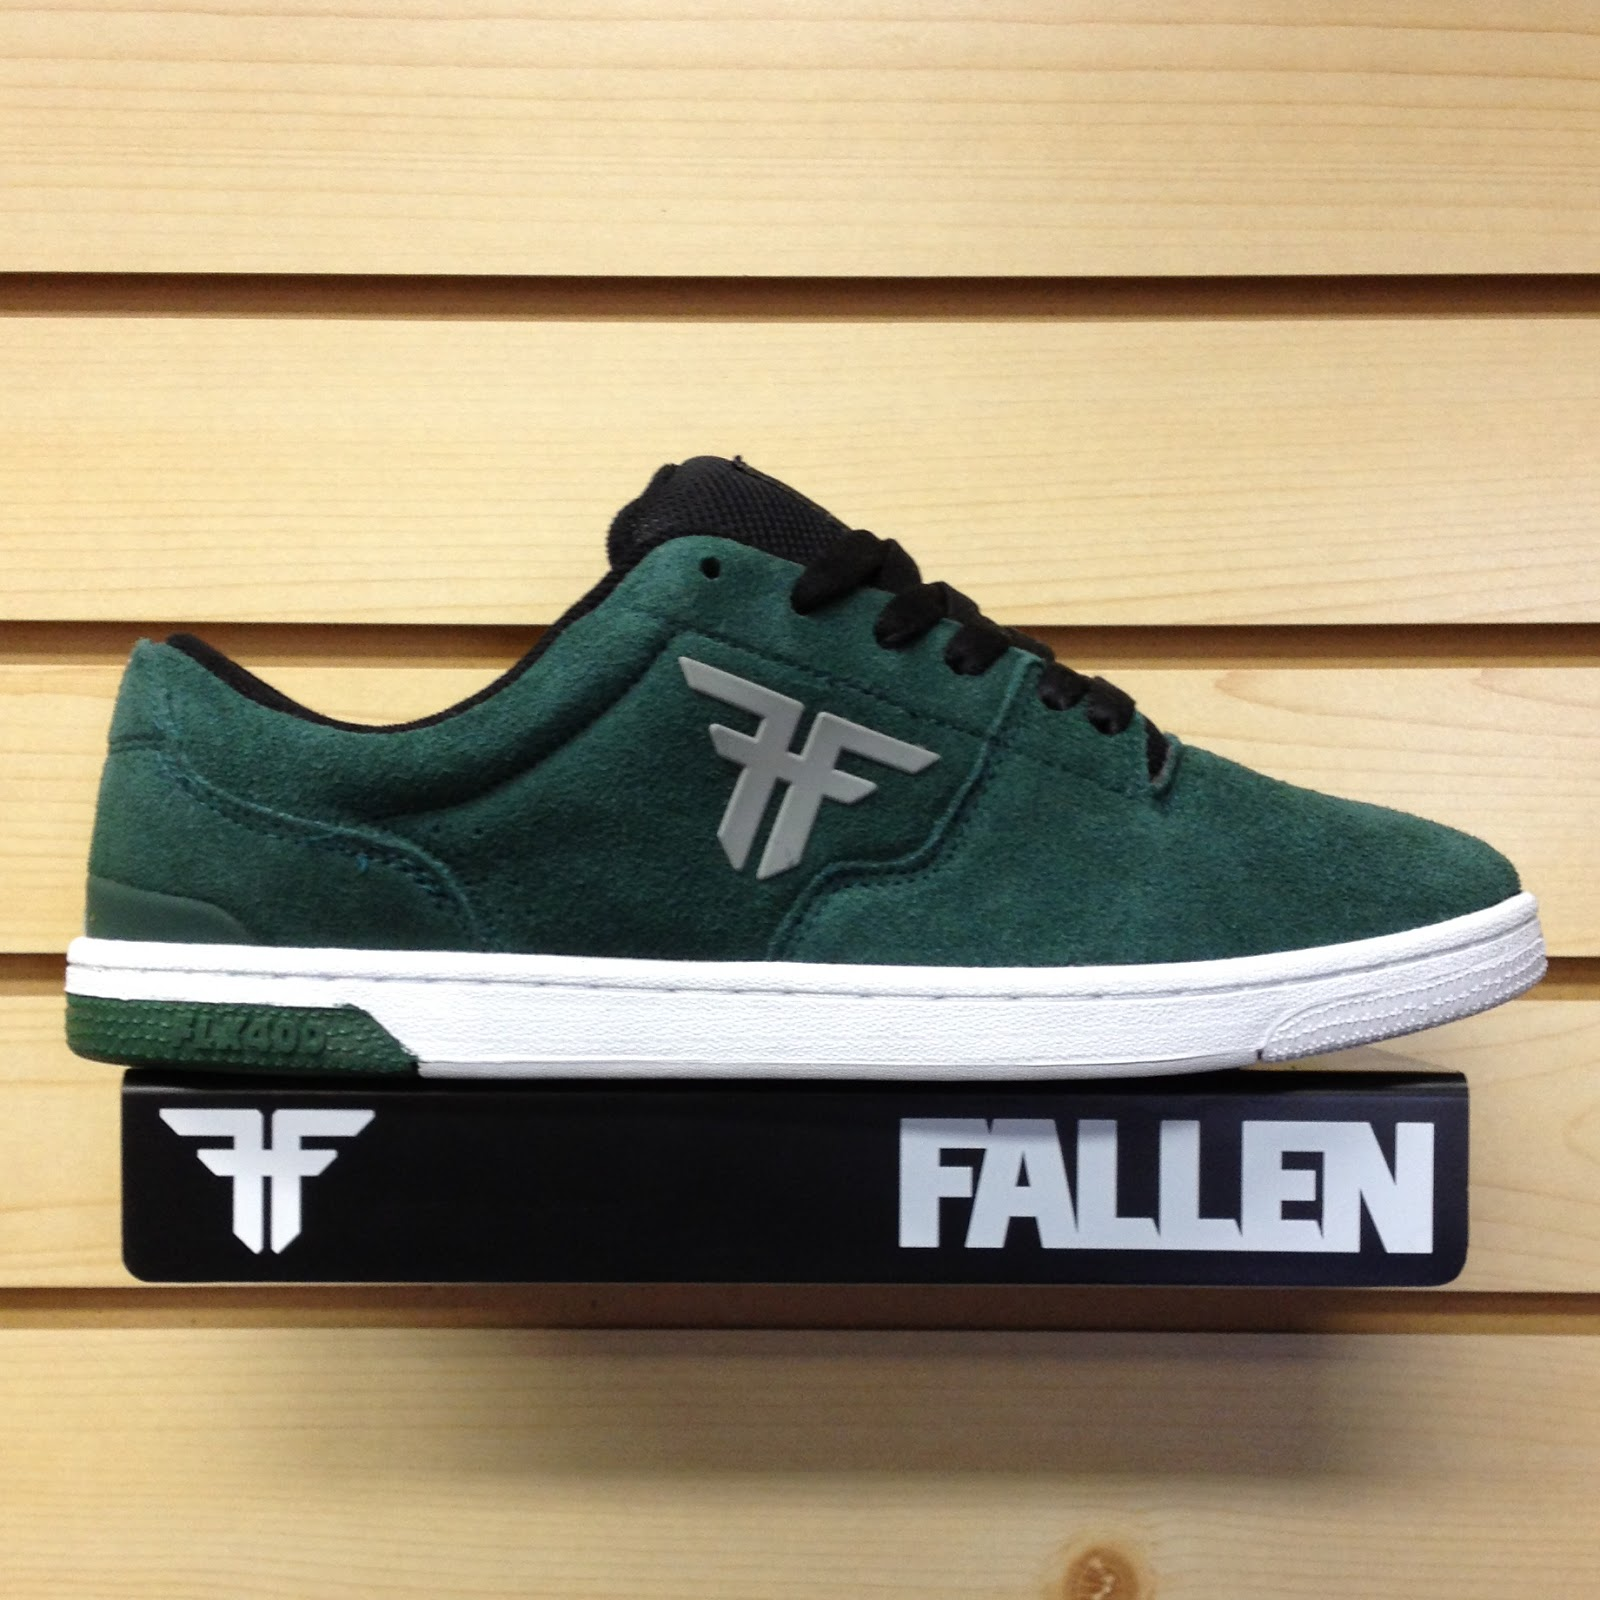 Fallen Shoes THE VIBE NEWSPRINT GRAY/FLAT BLACK SANDOVAL $ $ Fallen. Choose Options. Fallen Shoes THOMAS SPIRIT BLACK/WHITE $ $ Fallen. Choose Options. Fallen Skate Shoes JON DICKSON Roach Newsprint Gray/Psych Green $ $ Fallen. .